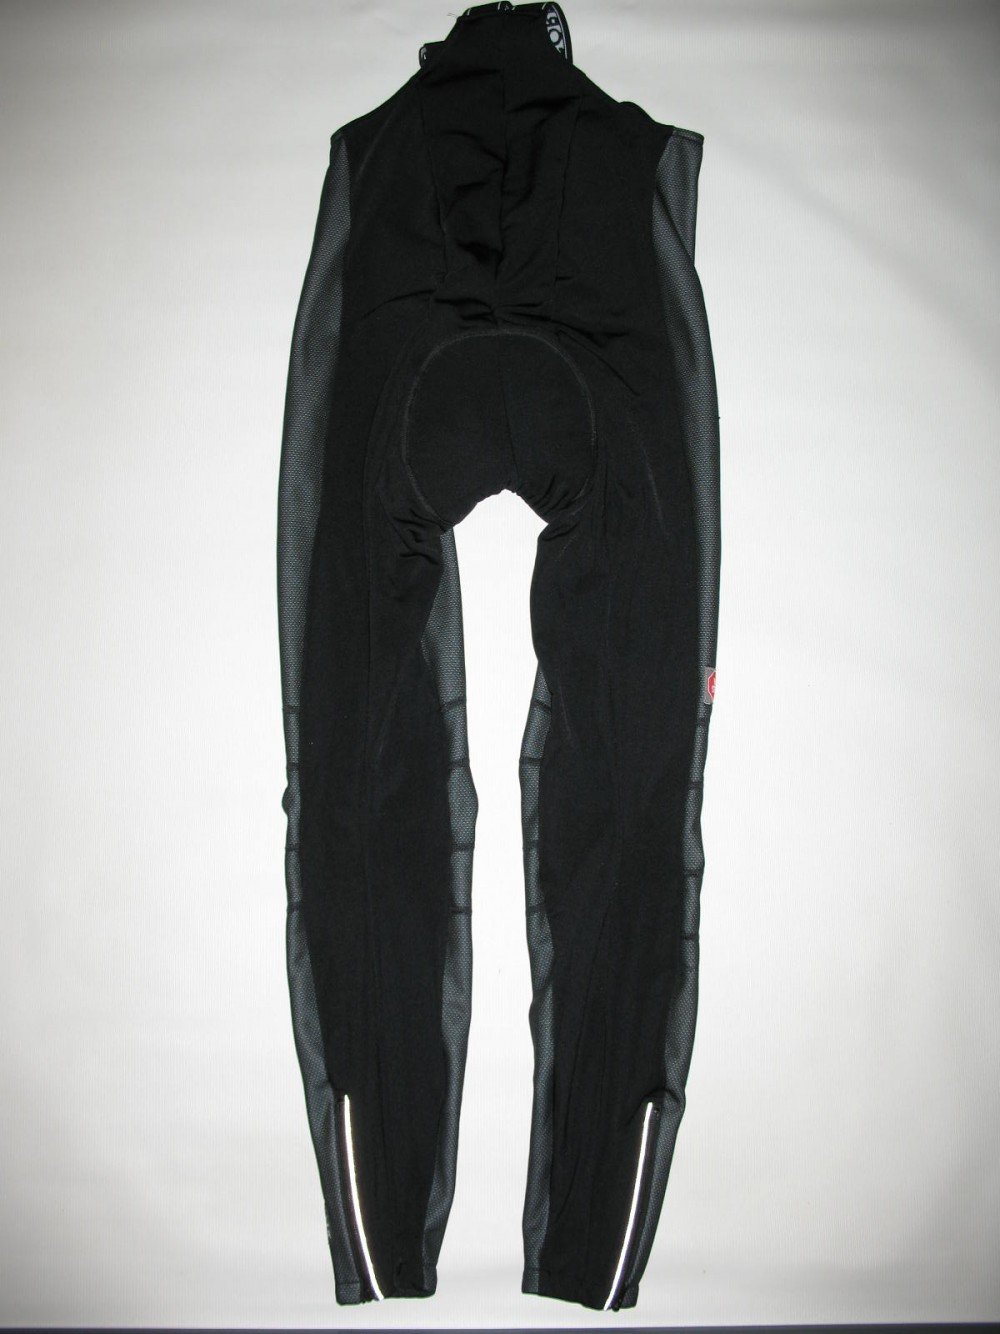 Велобрюки GORE bike wear windstopper cycling pants (размер М) - 2